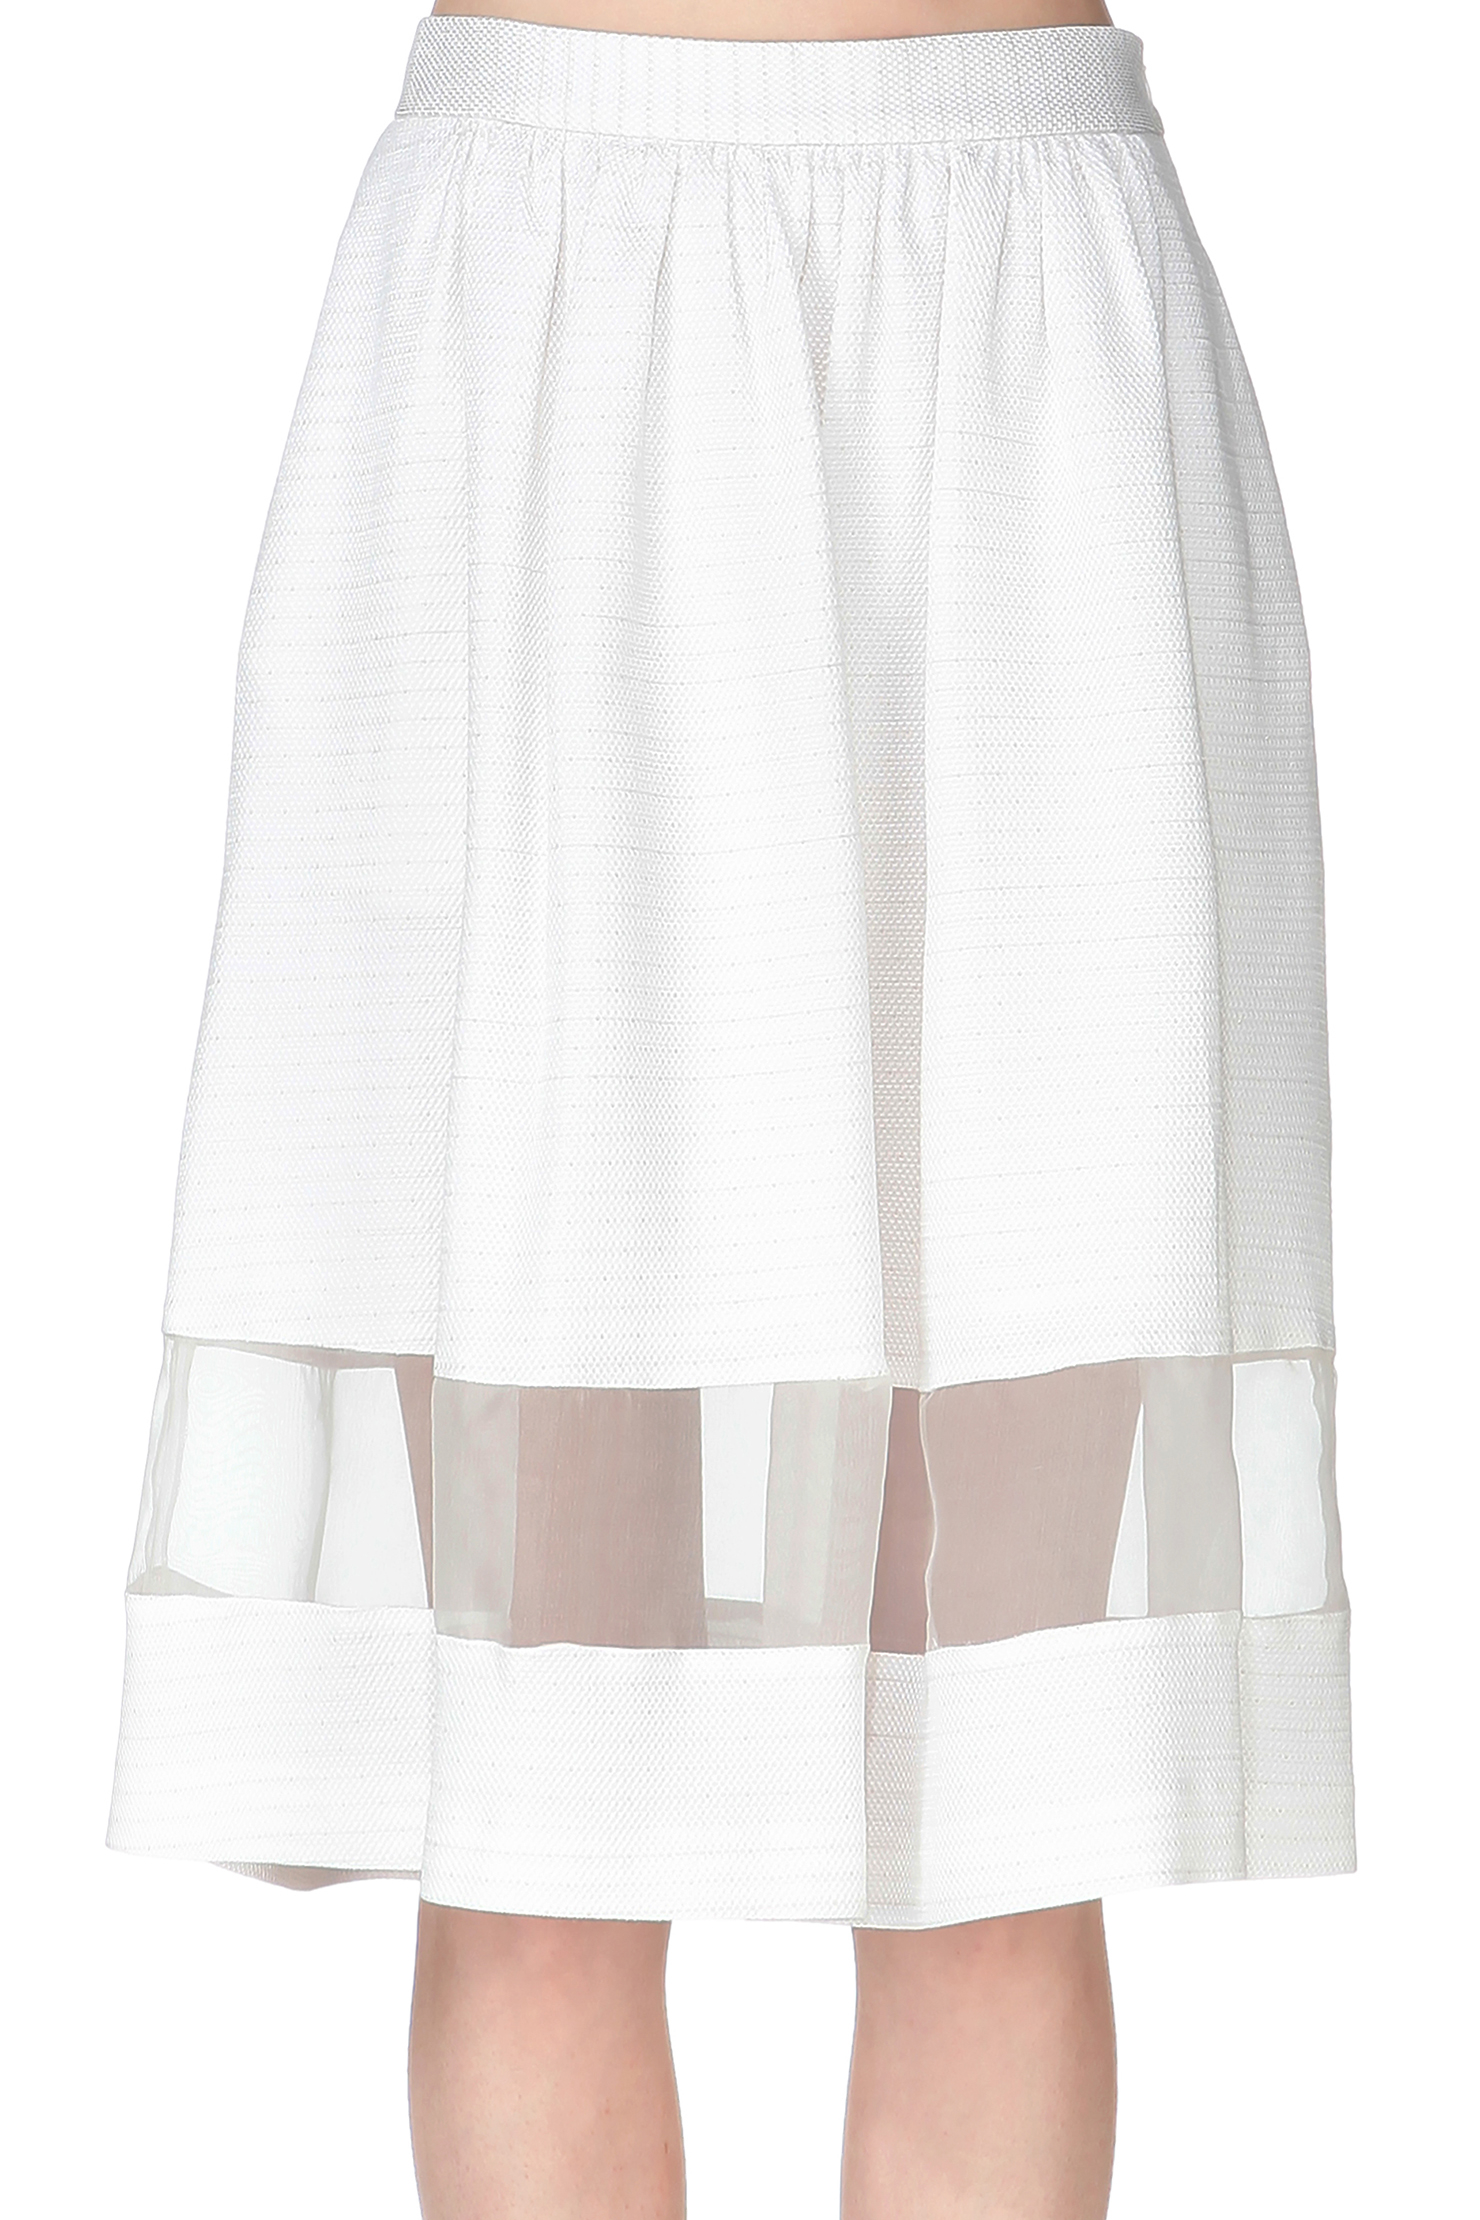 paul joe midi skirt maxi skirt in white lyst